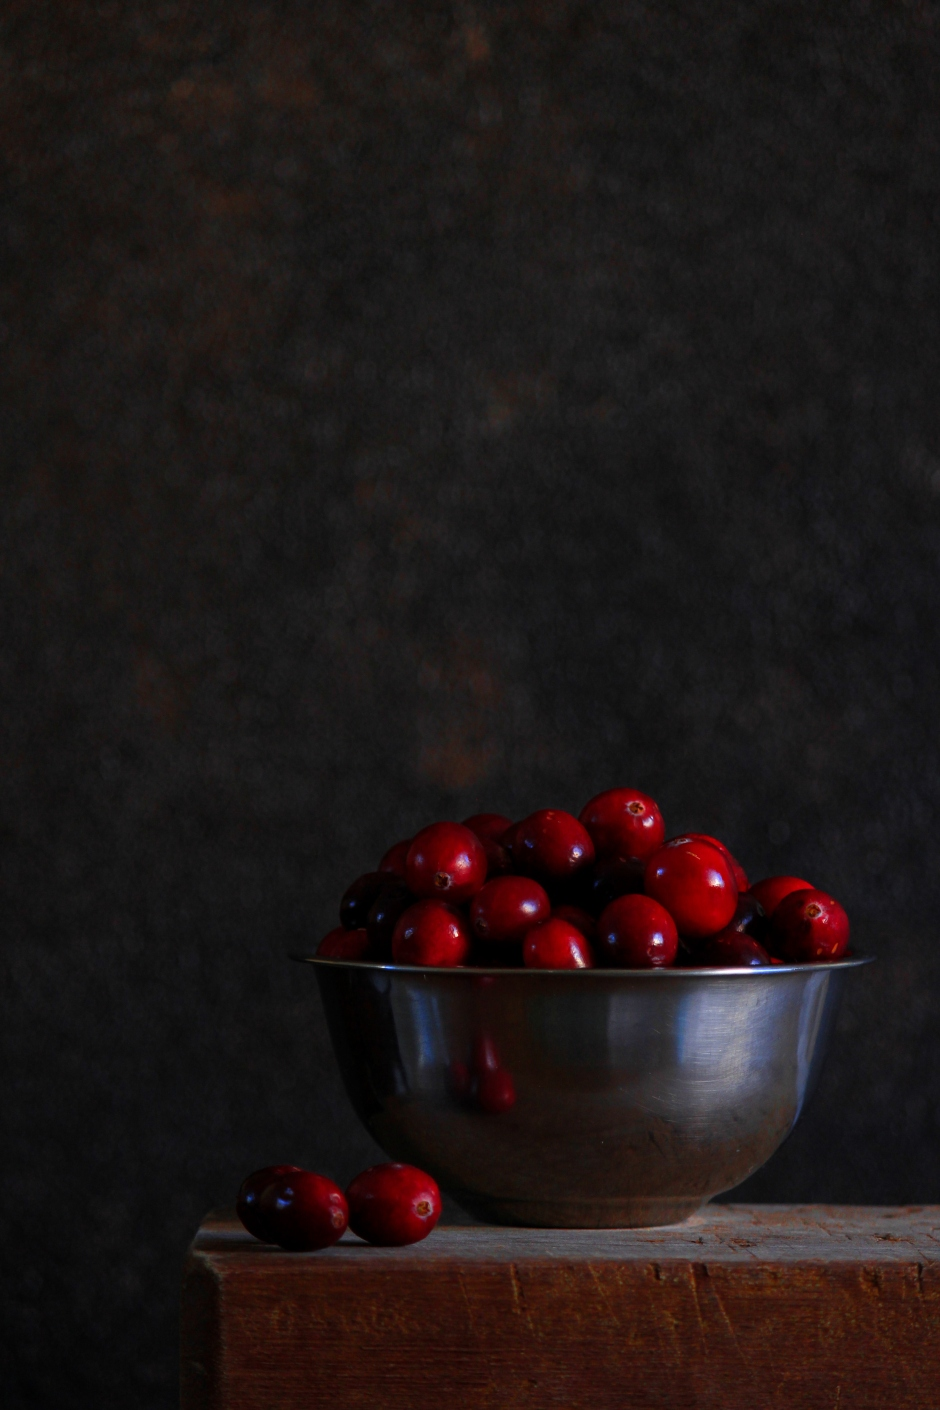 DIY Food Photography Backgrounds - Part 1